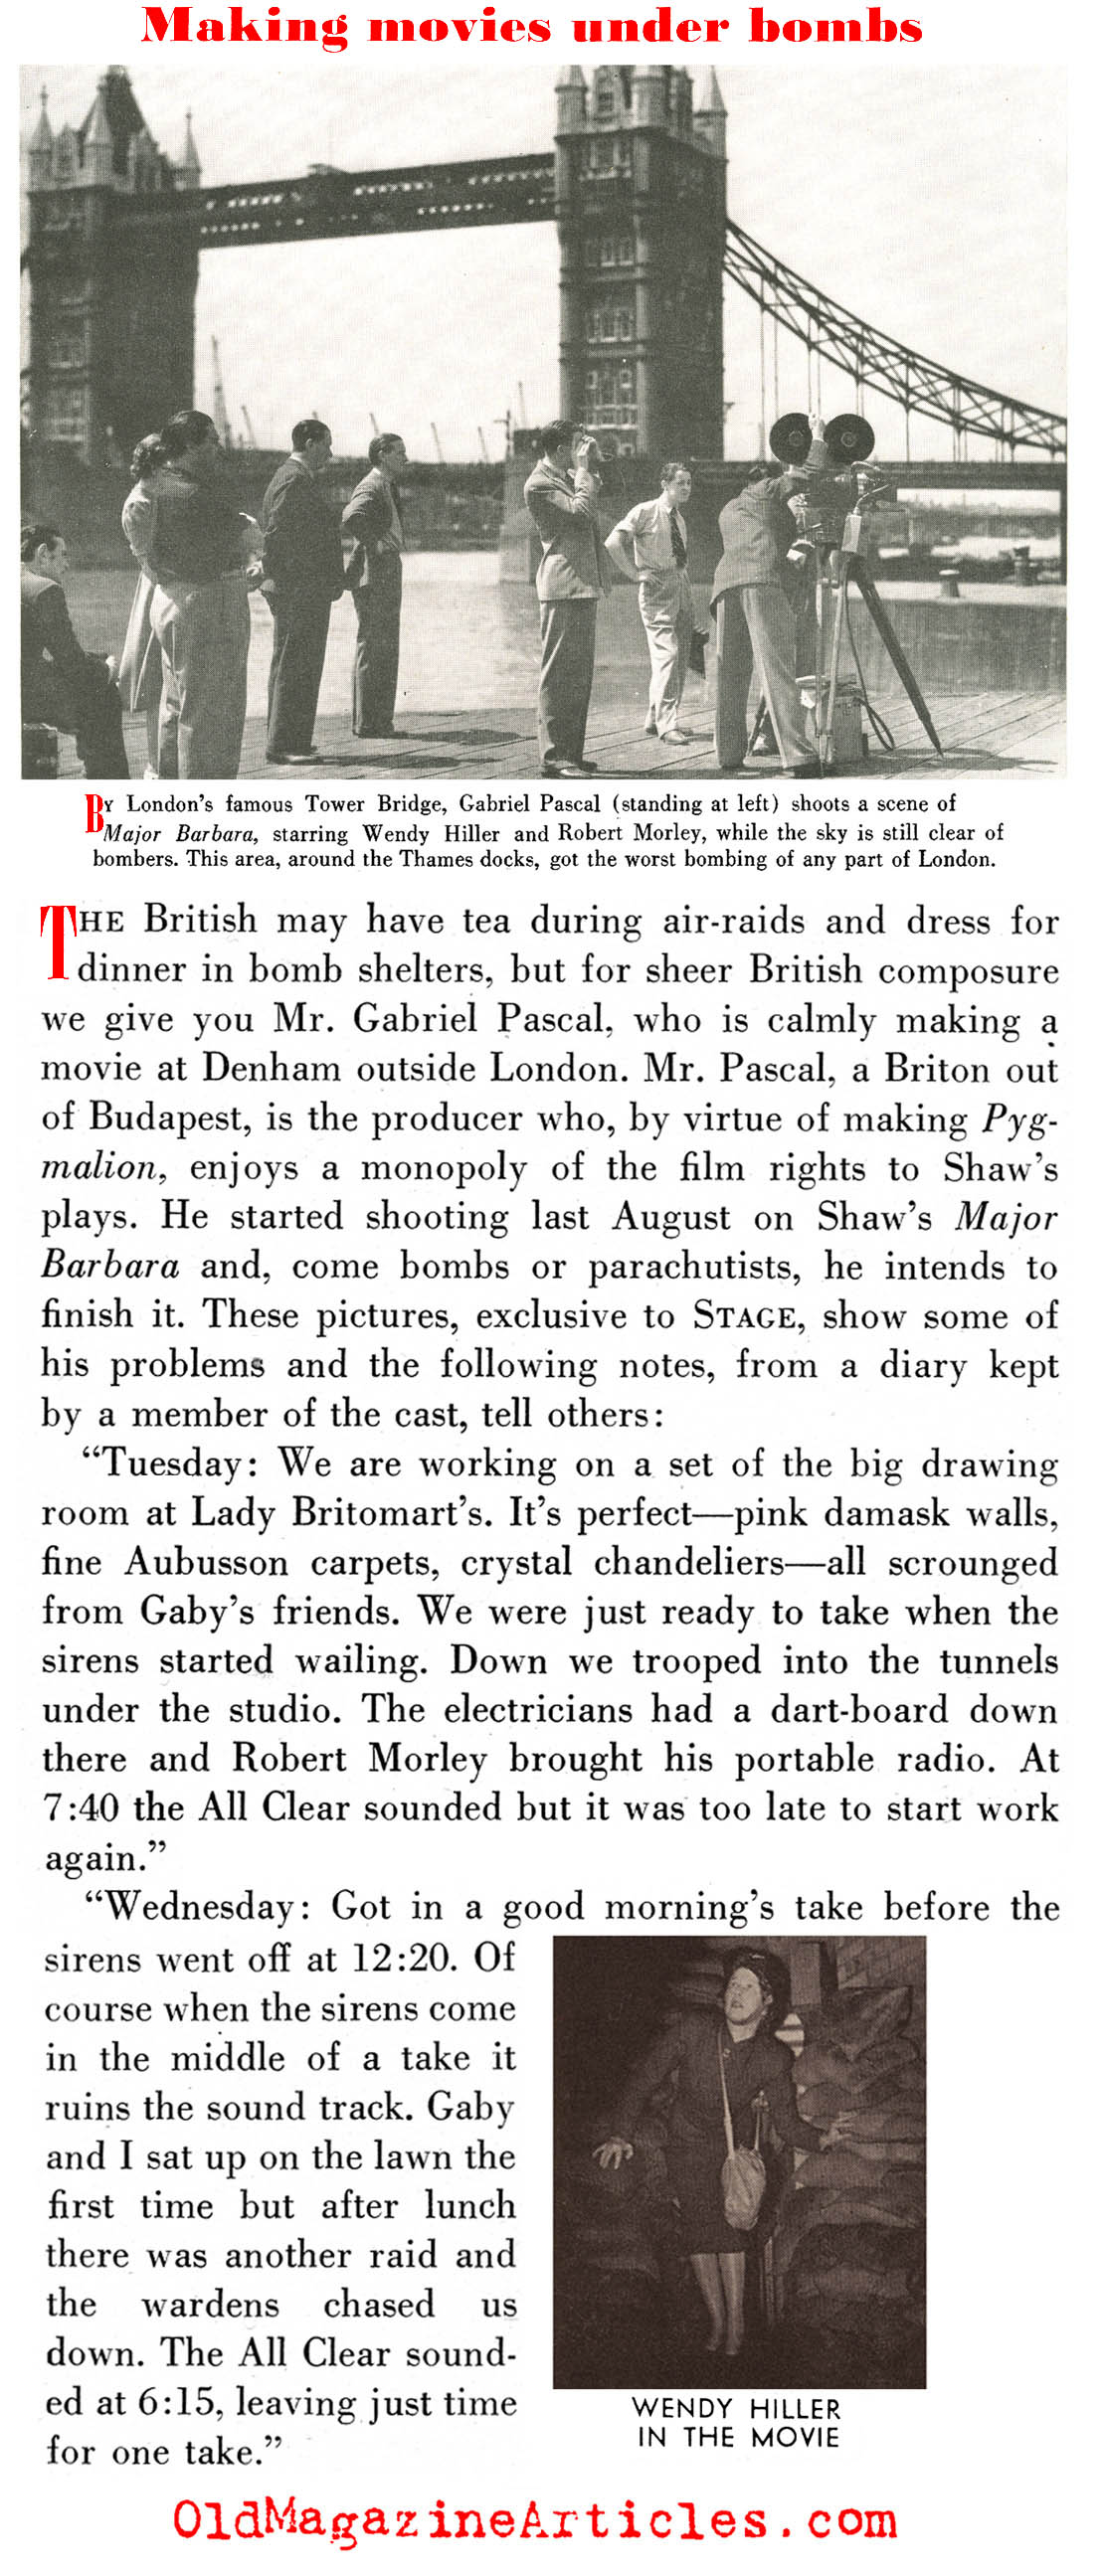 Shooting Scenes Between Air Raids (Stage Magazine, 1940)